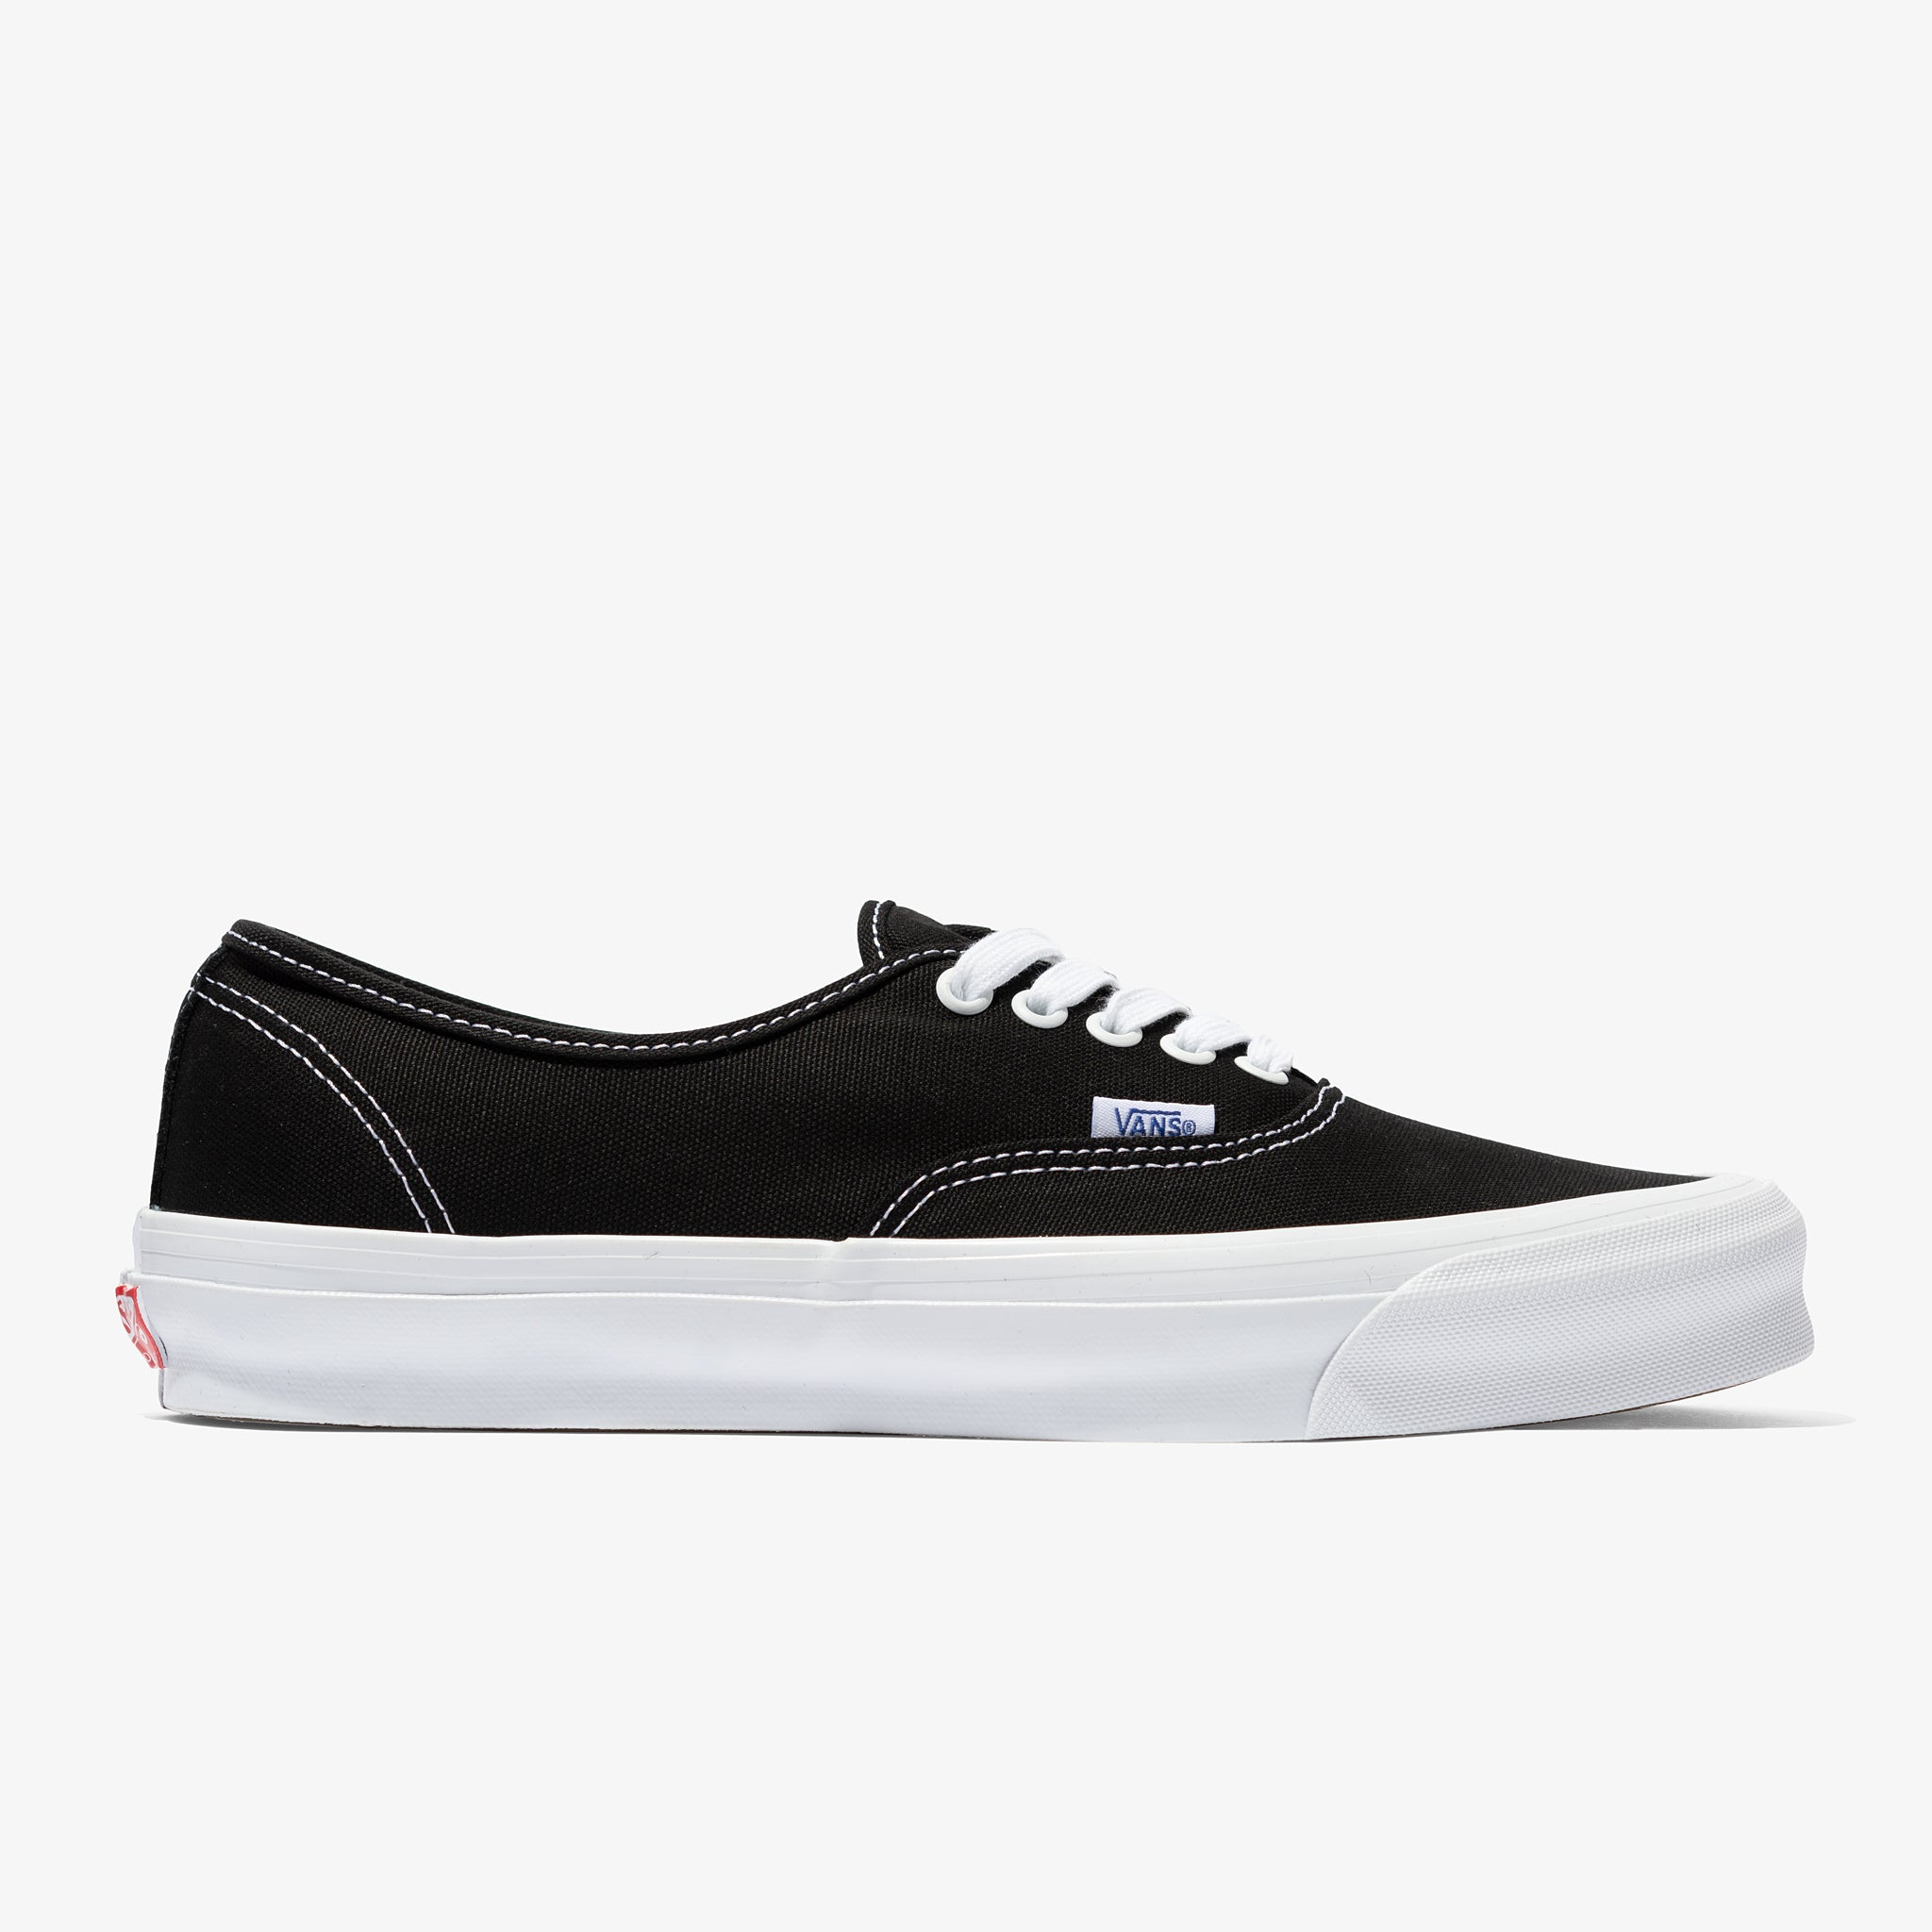 OG Authentic LX (Black) – Bows and Arrows